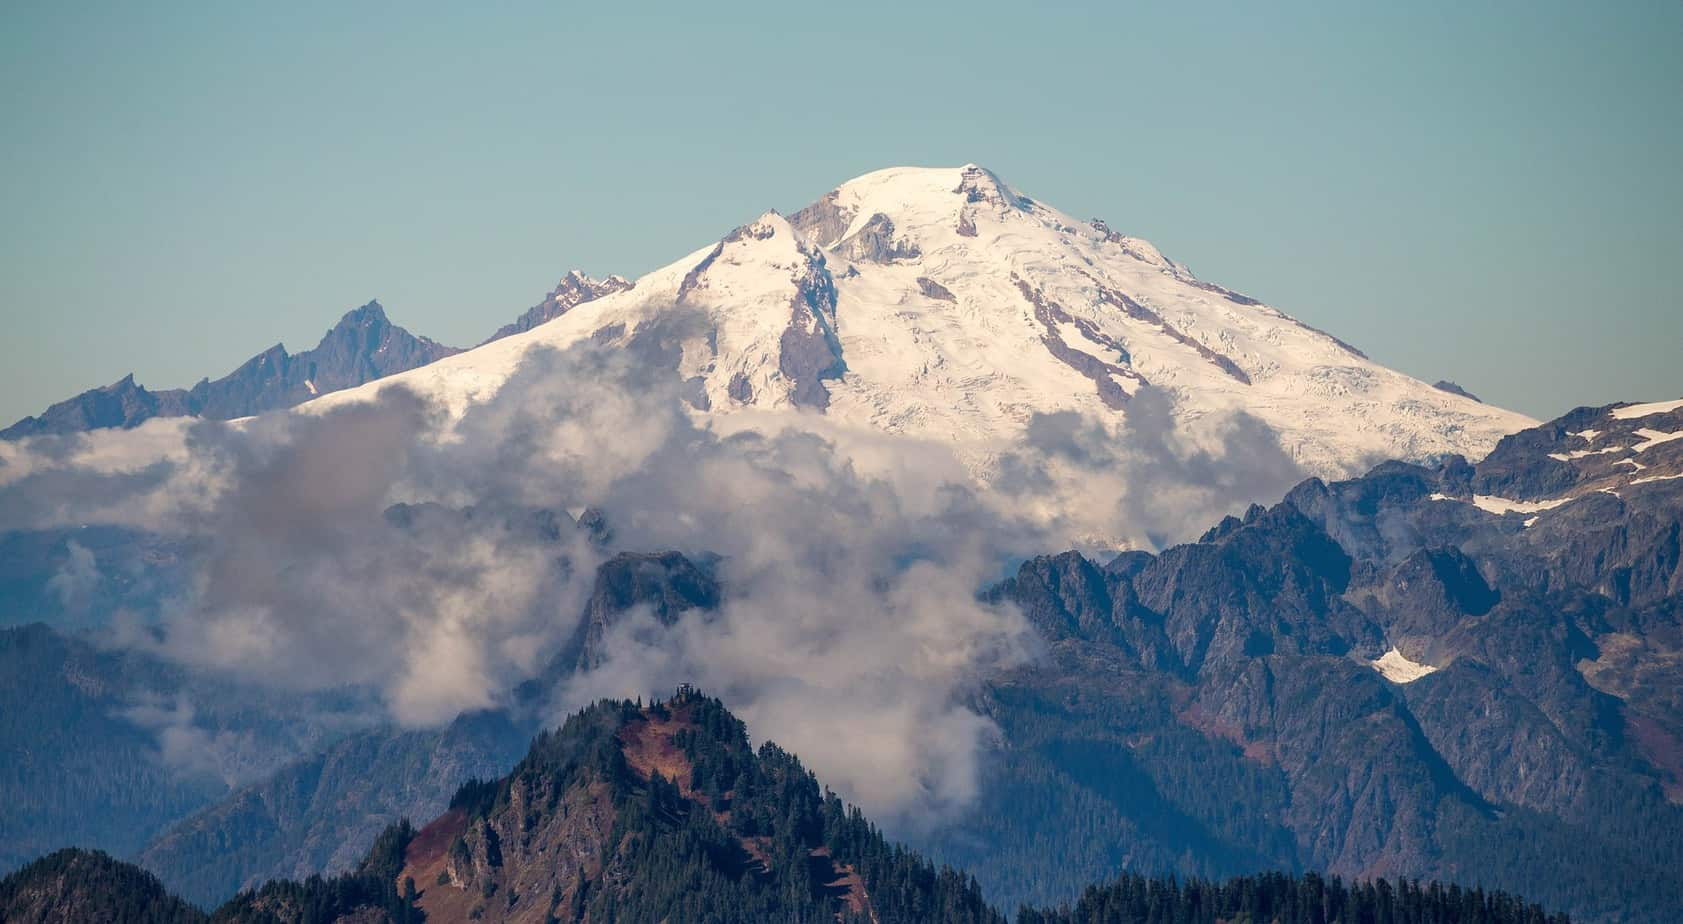 Climbing Mt. Baker: Here's What You Need to Know